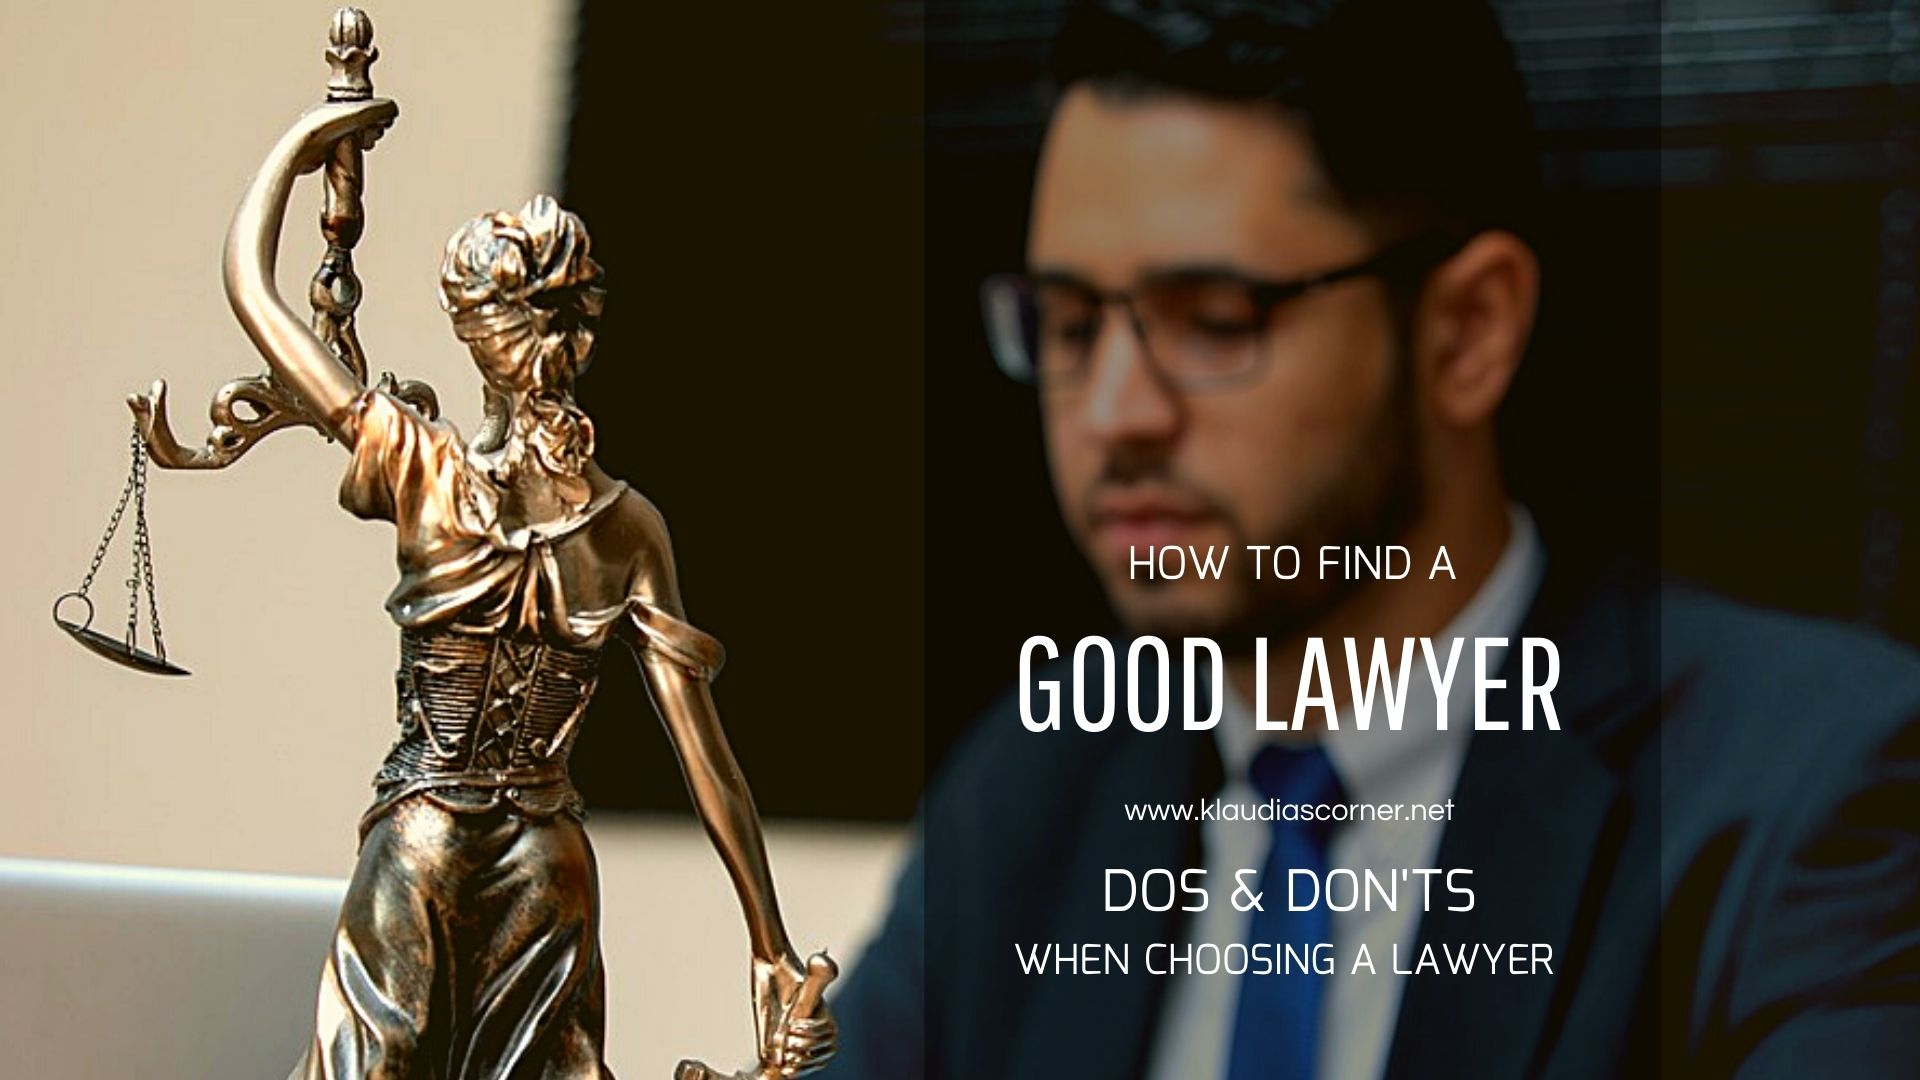 How To Find A Good Lawyer - Dos & Don'ts When Choosing a Lawyer